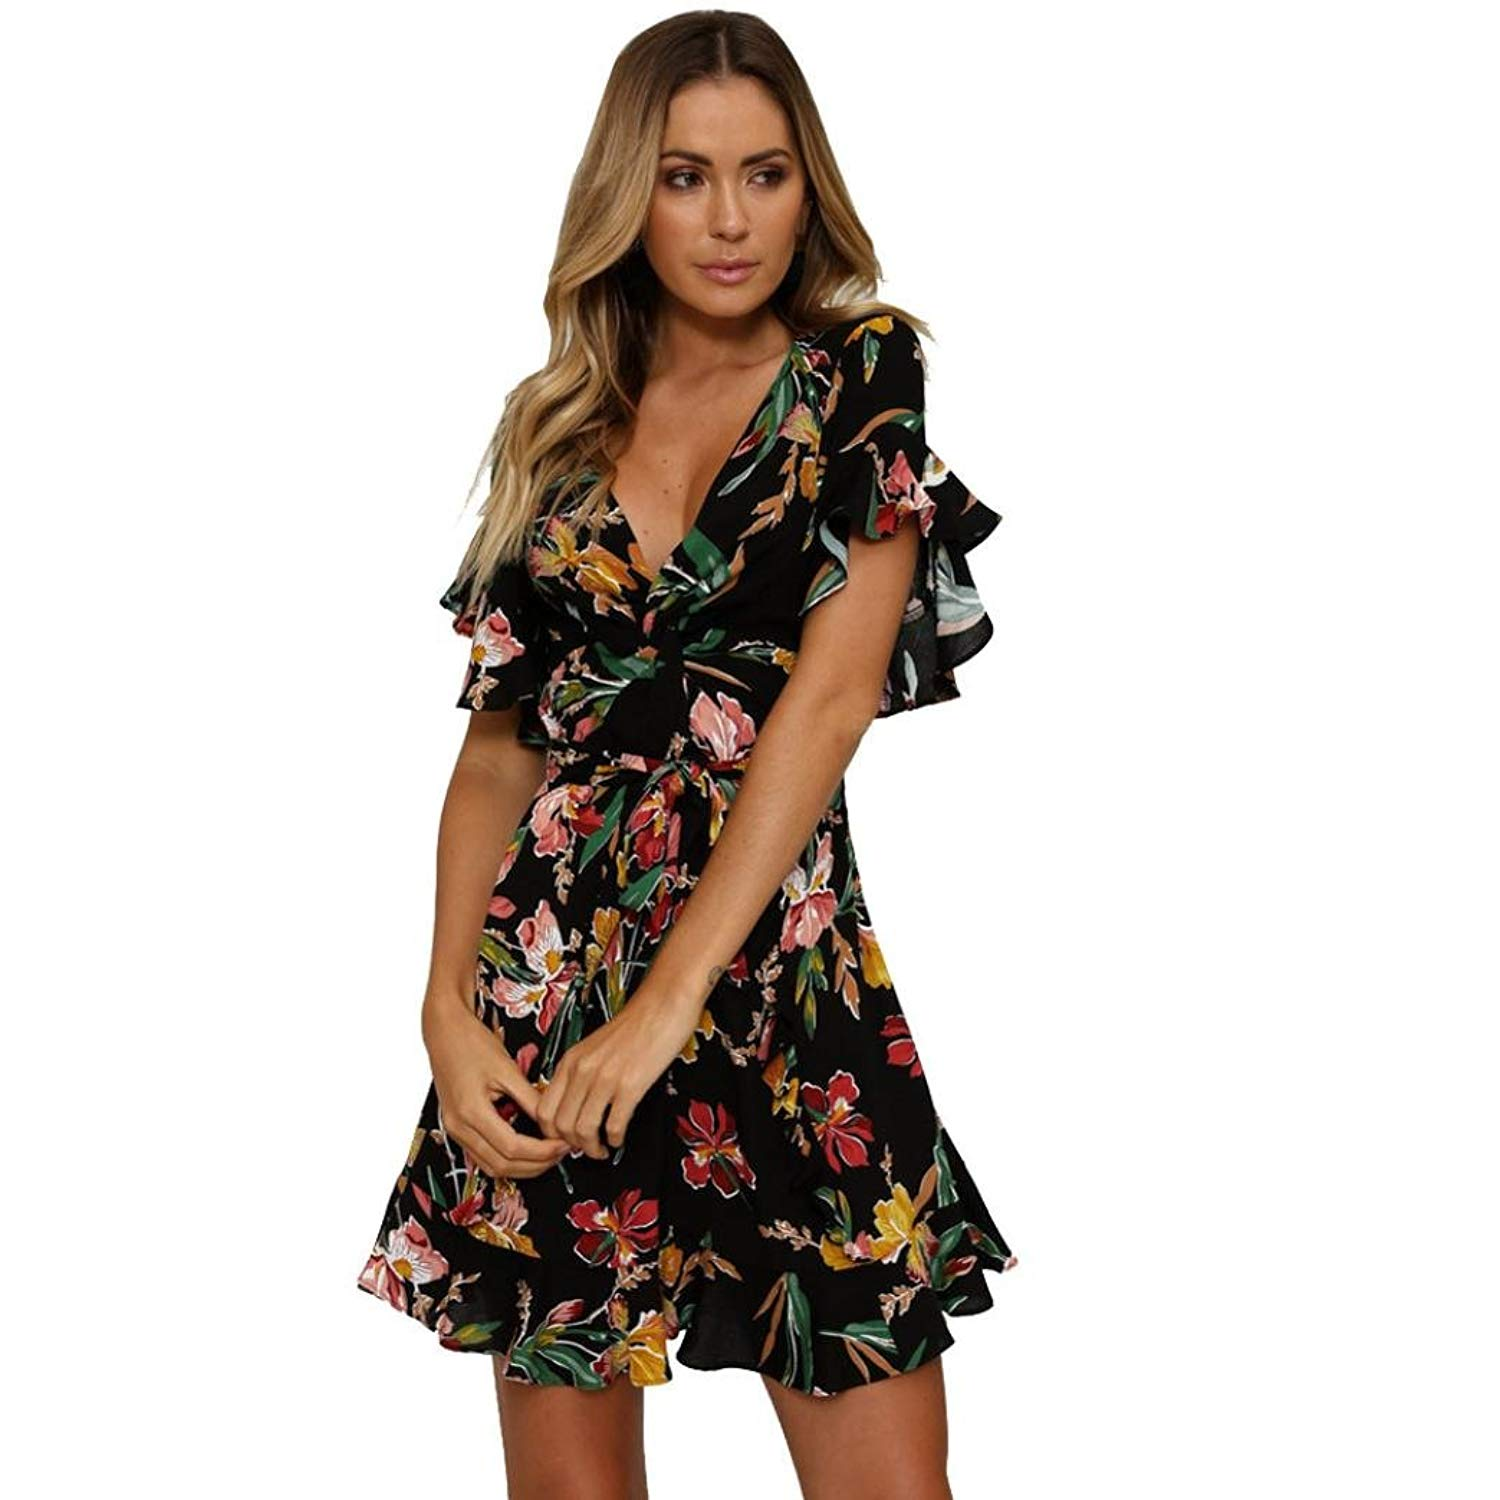 b23f77d1cd Get Quotations · CCSDR Women Short Sleeve Dress,2018 Summer Ladies Floral  Midi Dress Party Maxi Dress Sexy